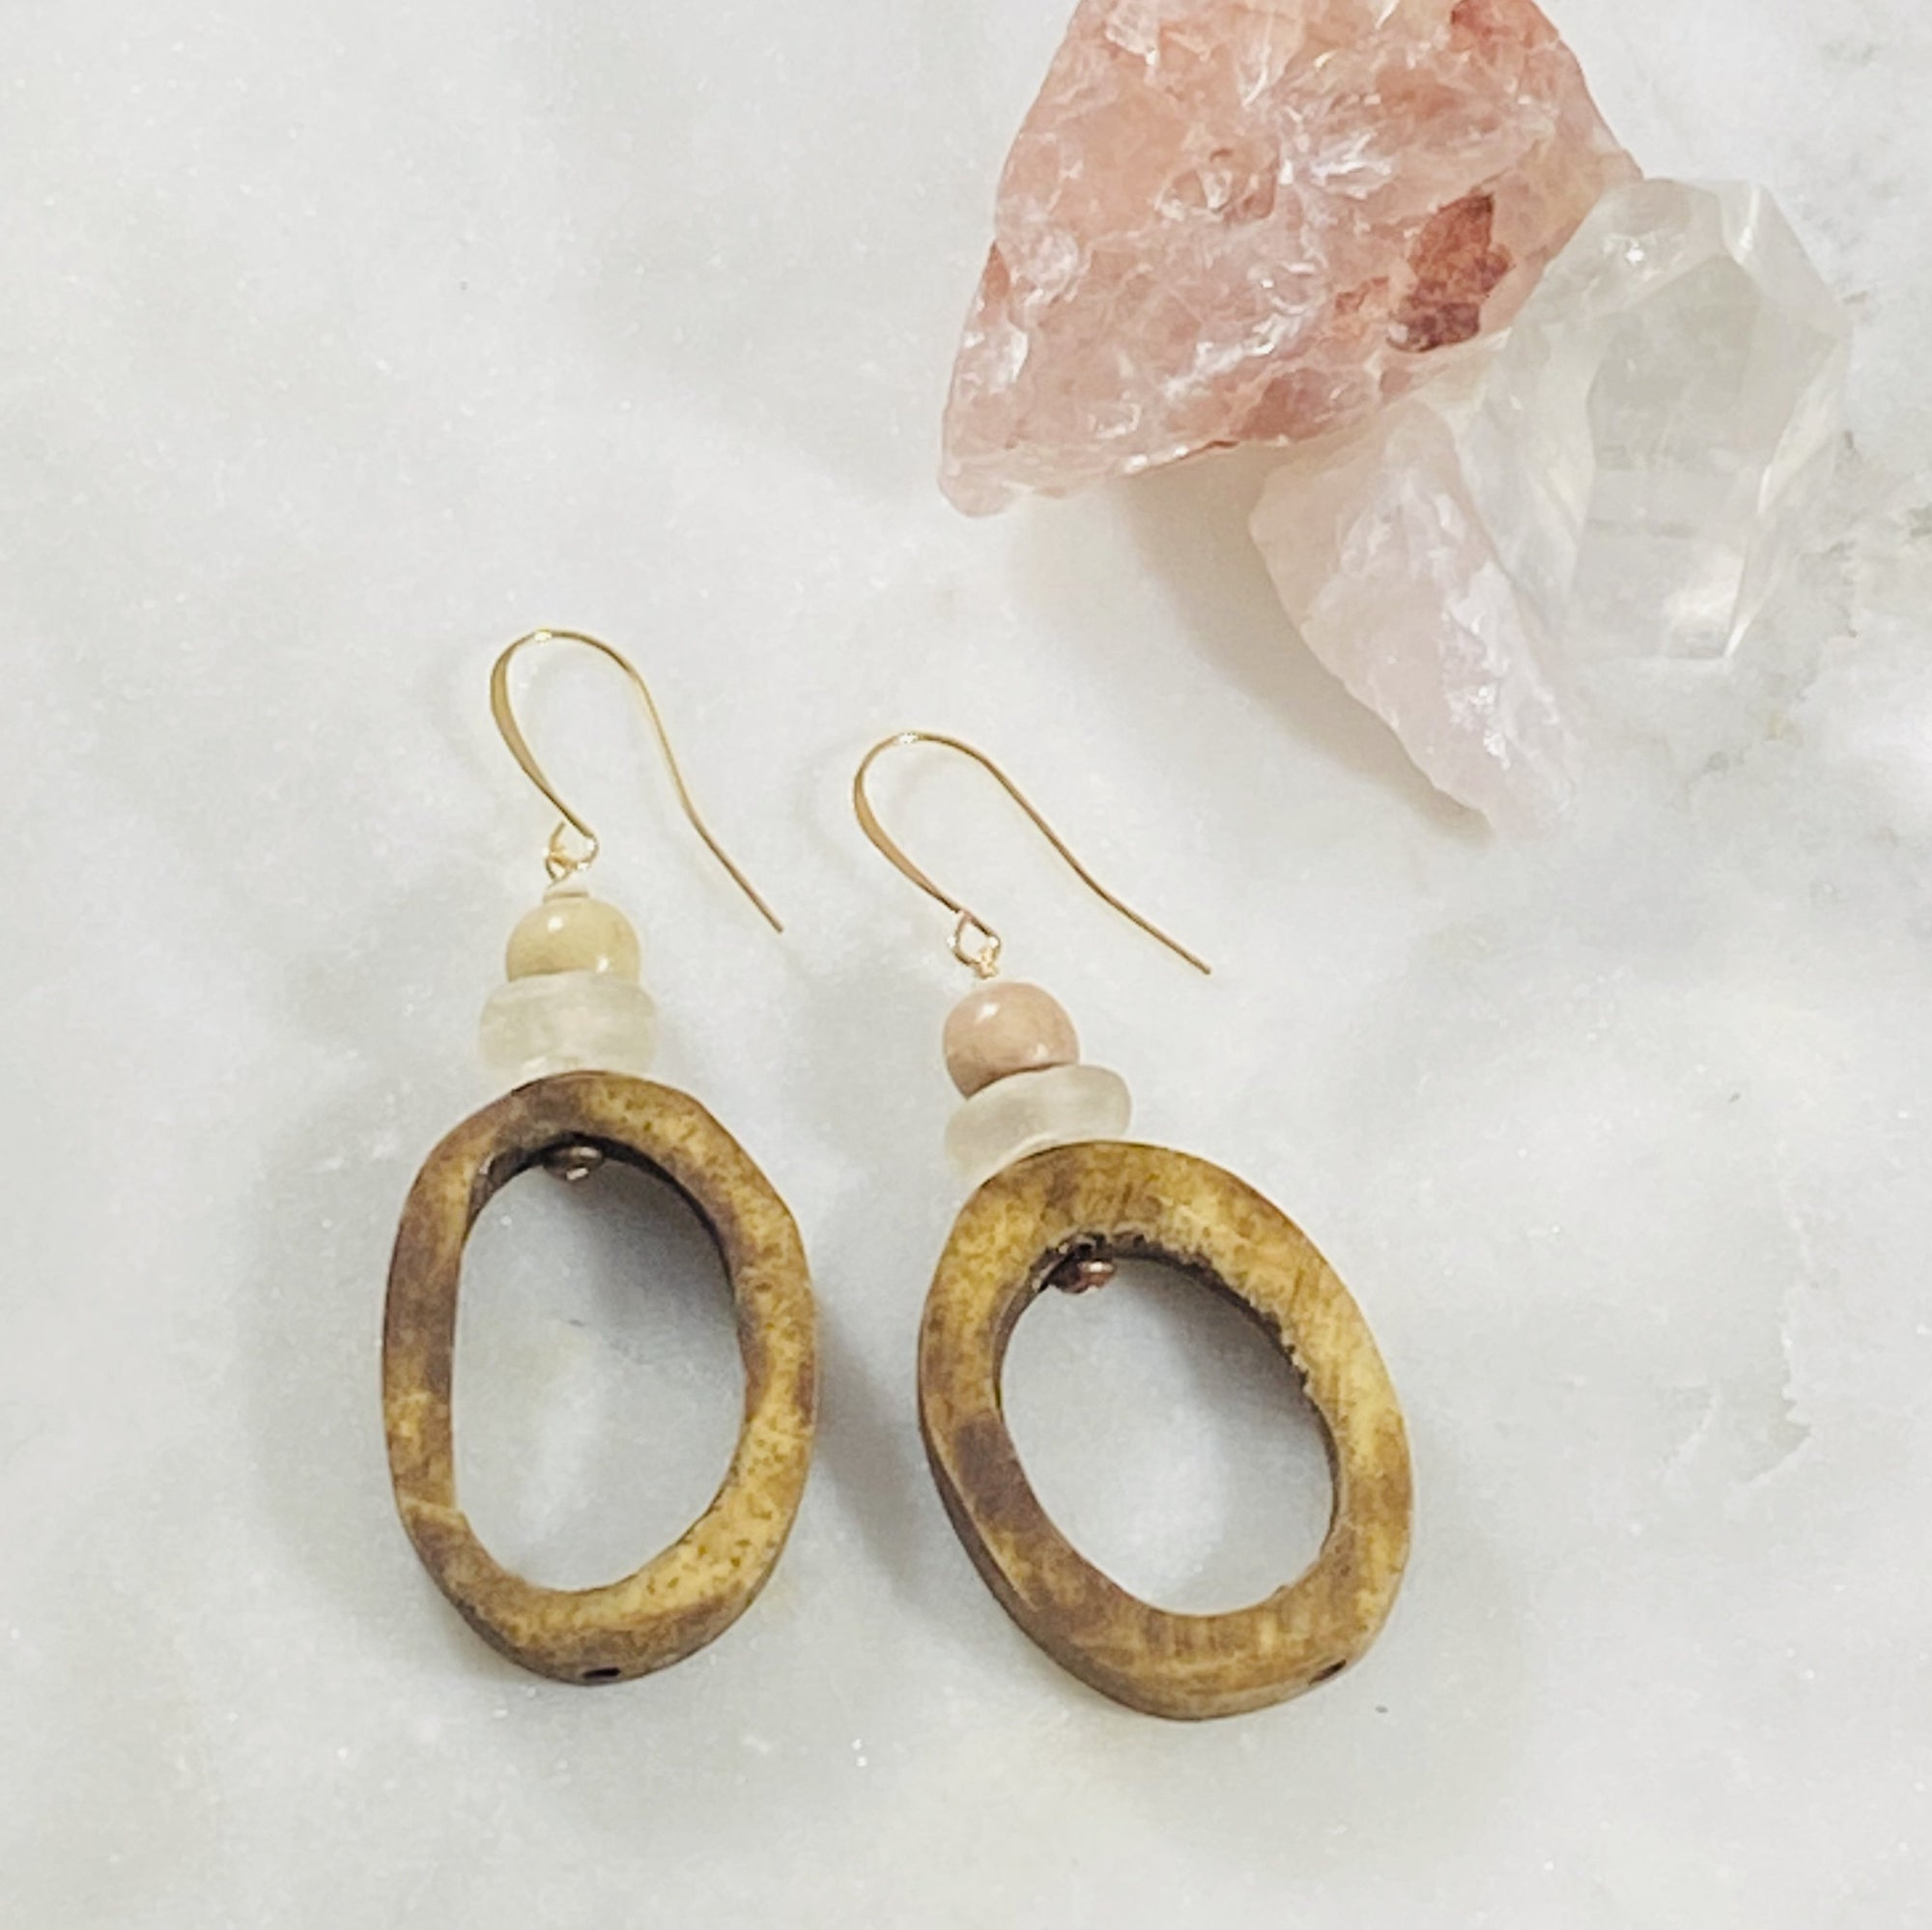 Handmade Sarah Belle Camille Boho Earrings with bone and recycled glass